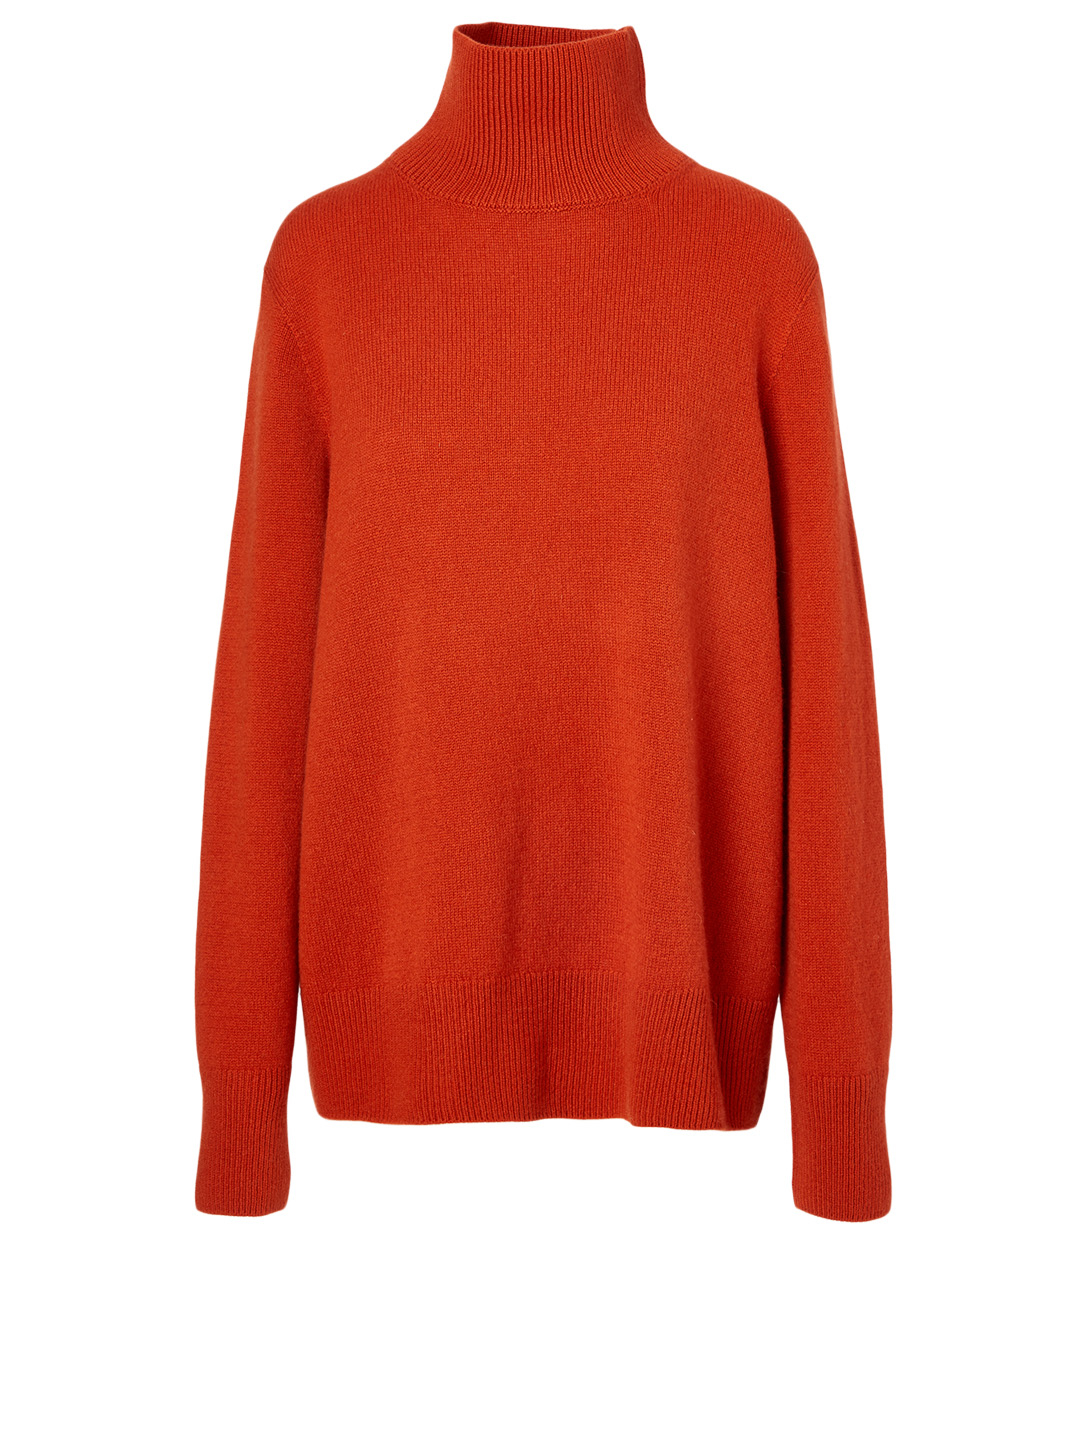 THE ROW Milina Wool And Cashmere Top Women's Orange